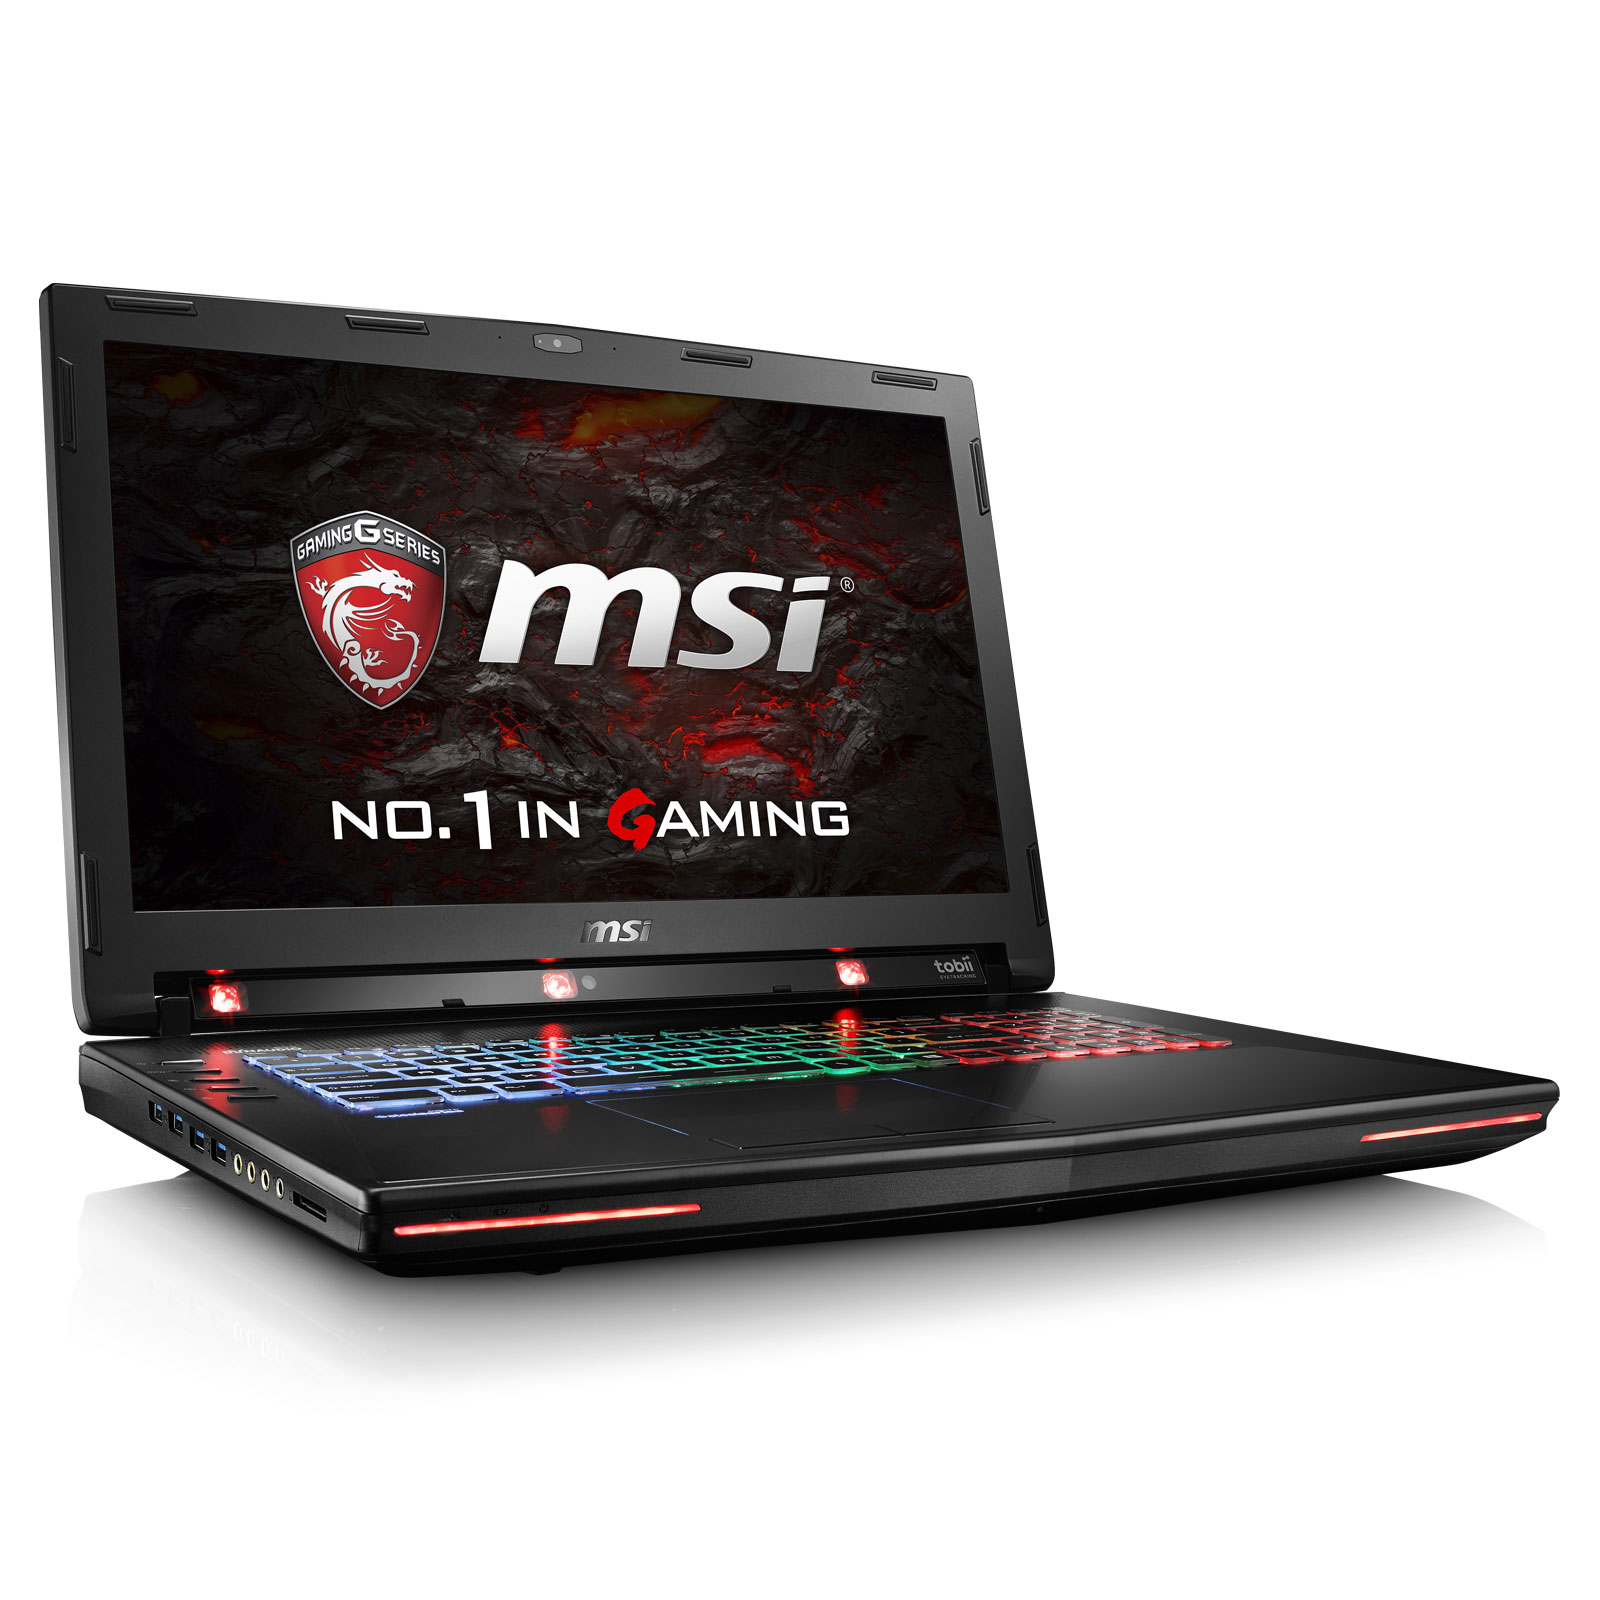 "PC portable MSI GT72VR 6RE-011FR Dominator Pro Tobii Intel Core i7-6700HQ 16 Go SSD 256 Go + HDD 1 To 17.3"" LED Full HD G-Sync NVIDIA GeForce GTX 1070 8 Go Graveur DVD Wi-Fi AC/Bluetooth Webcam Windows 10 Famille 64 bits (garantie constructeur 2 ans)"